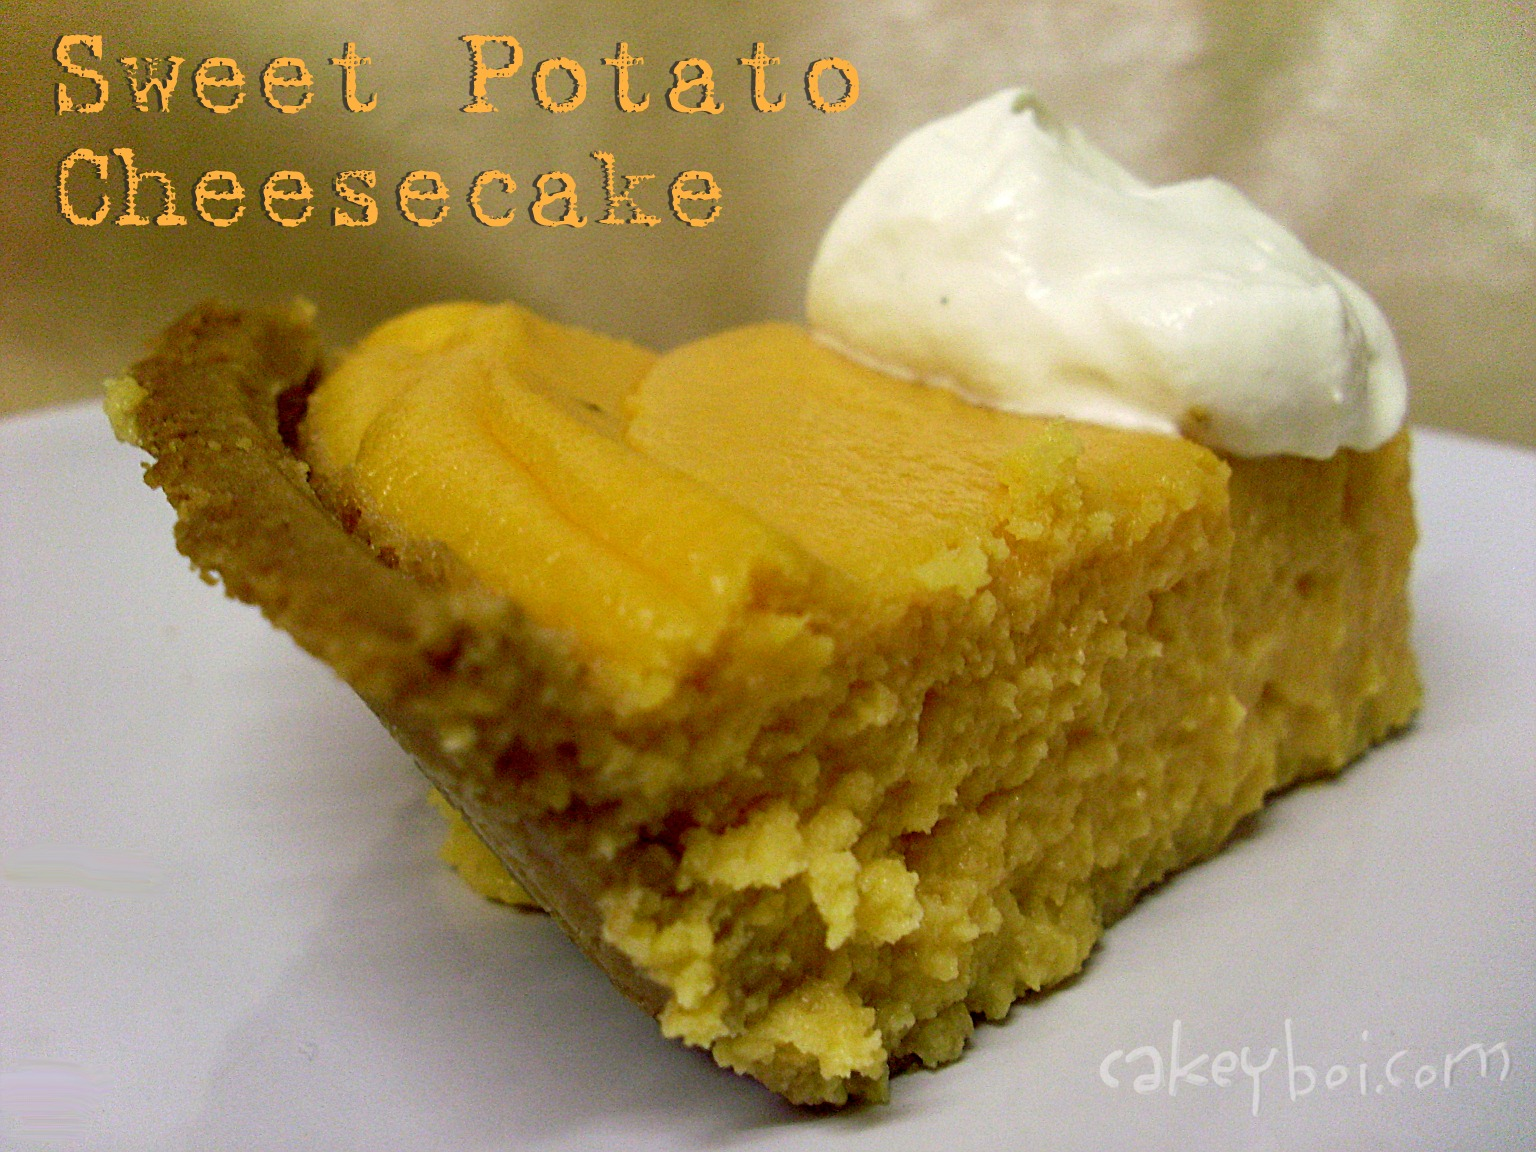 Cakeyboi: Sweet Potato Cheesecake